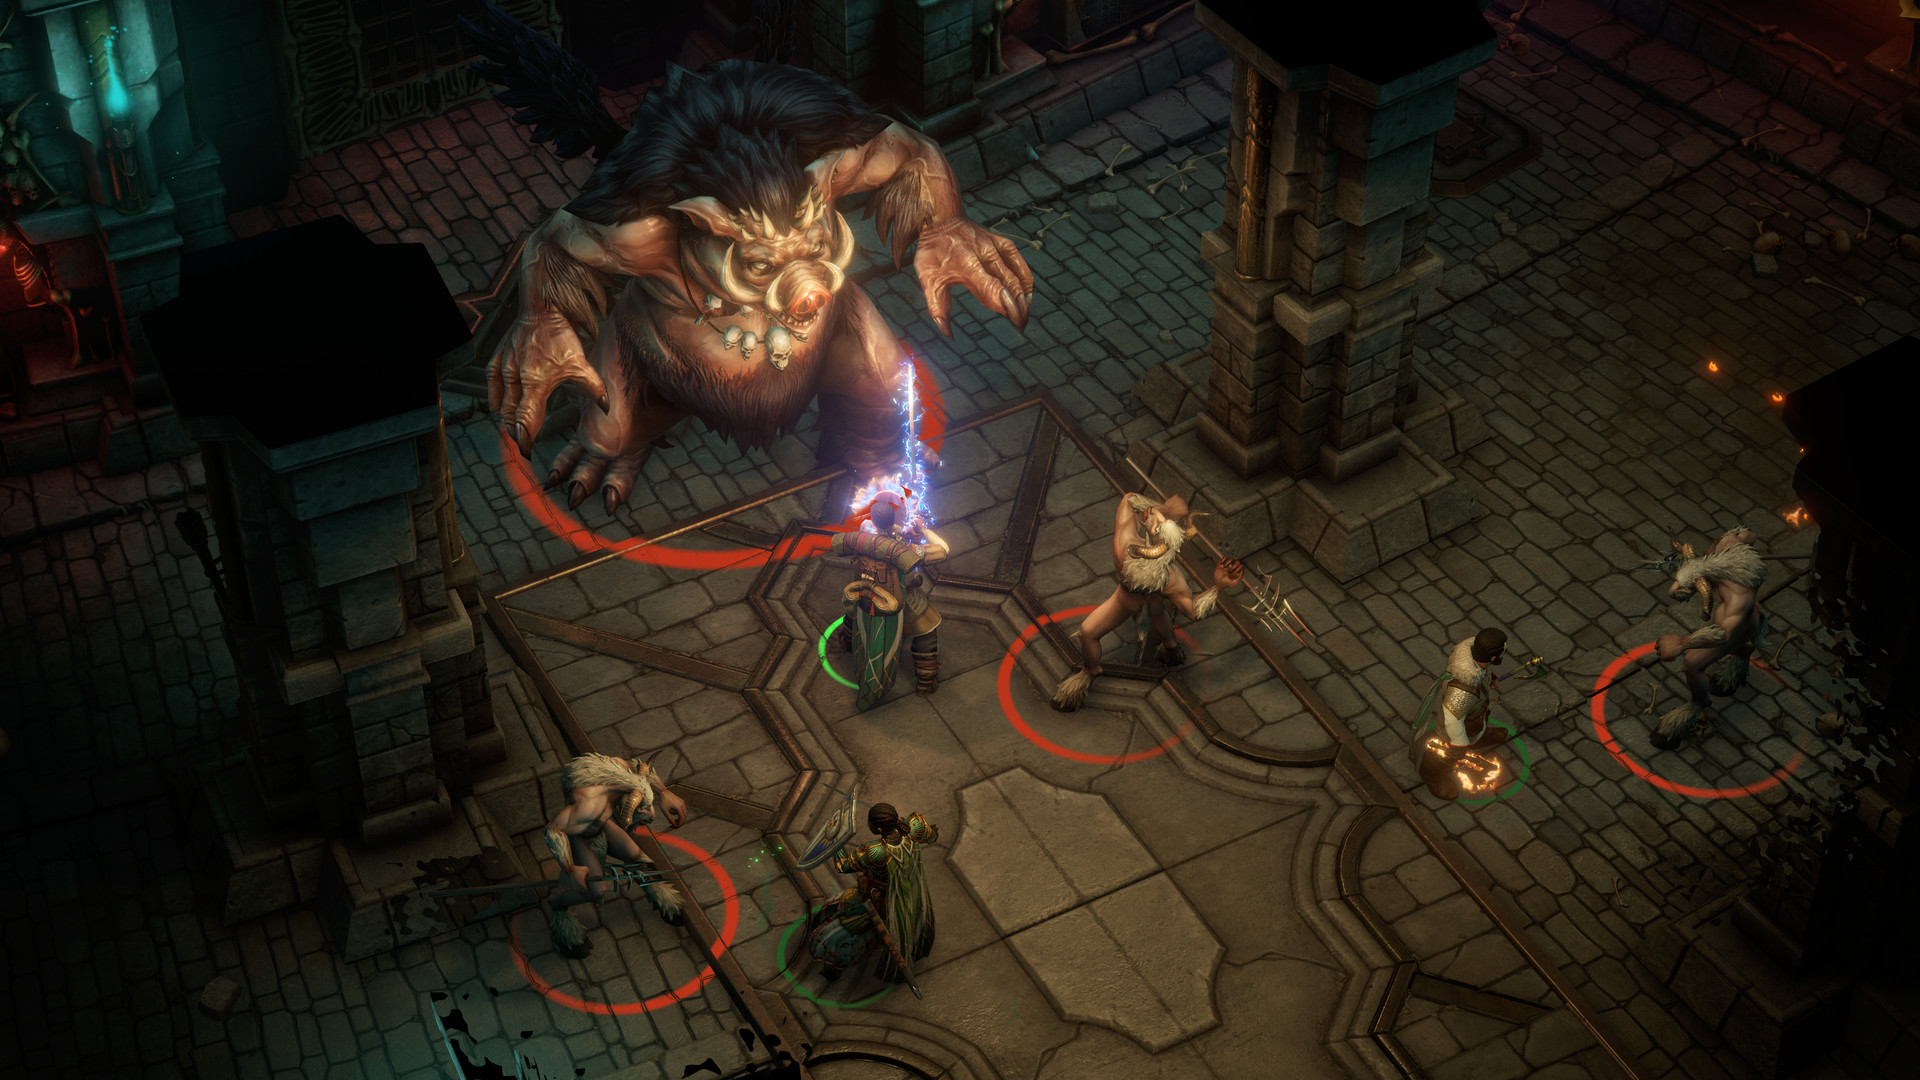 Pathfinder: Wrath of the Righteous Free Download